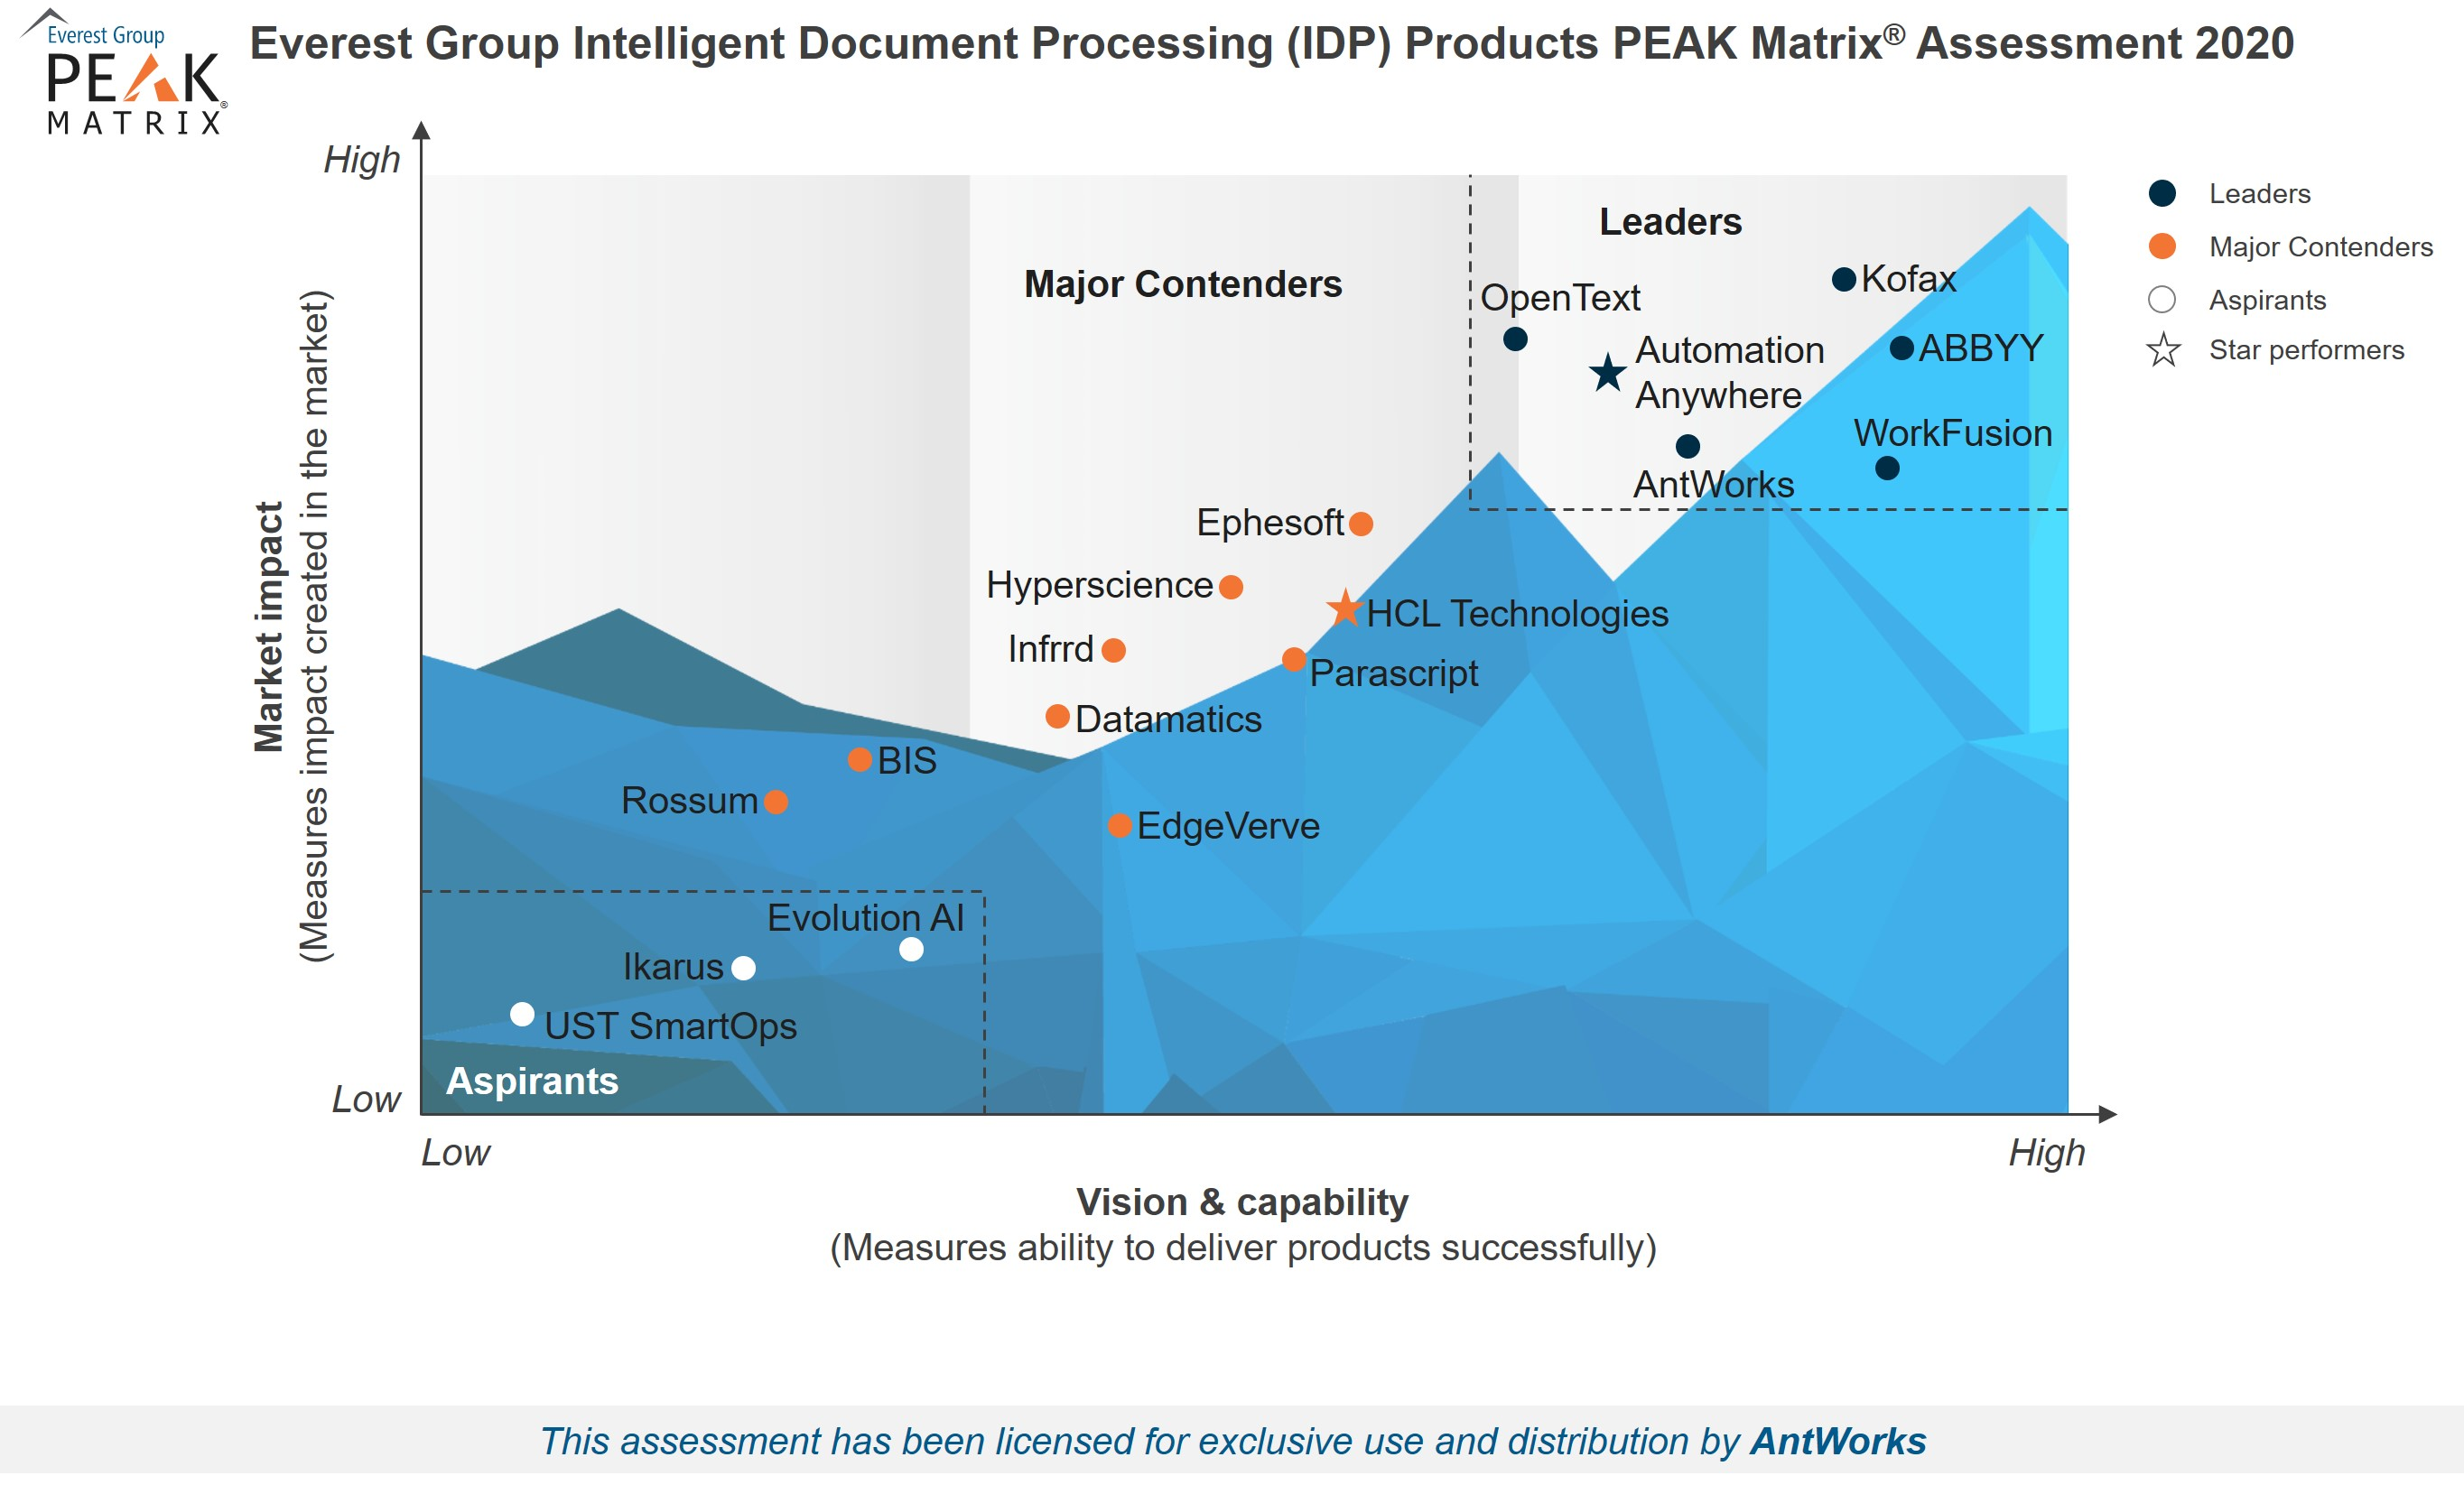 For the second year in a row, AntWorks™ is named a Leader in Everest Group's Intelligent Document Processing (IDP) PEAK Matrix™ 2020